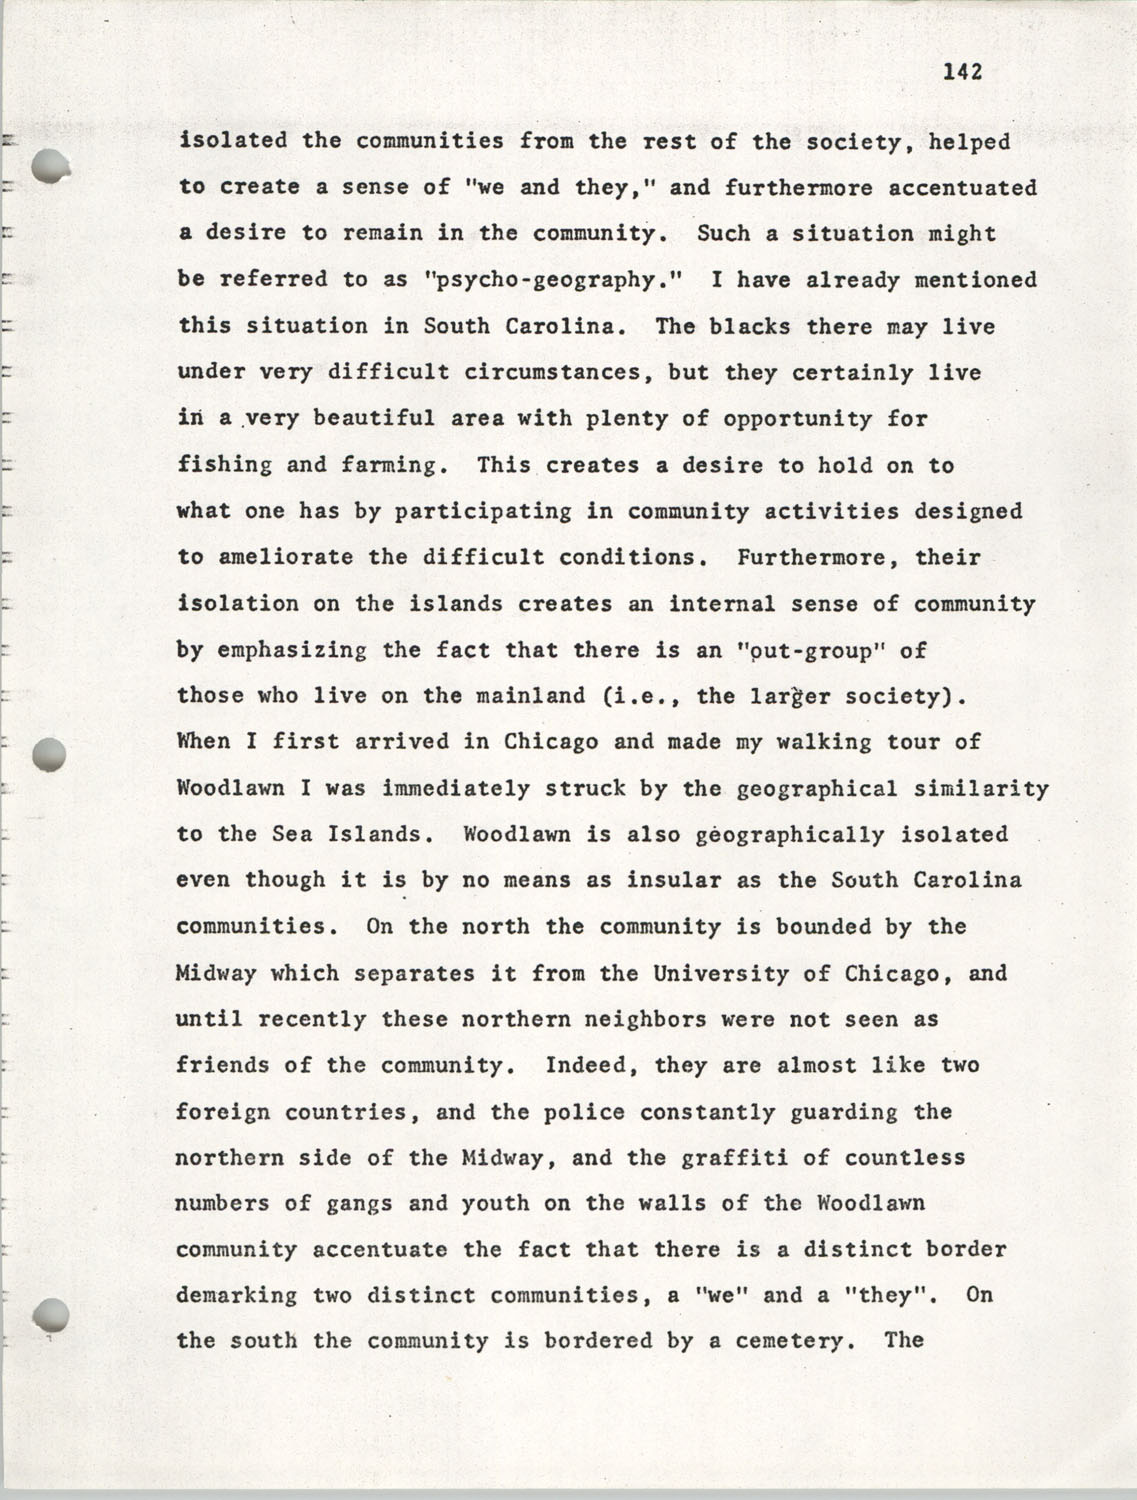 Citizen Participation. Democracy and Social Change, December 1, 1969, Page 142